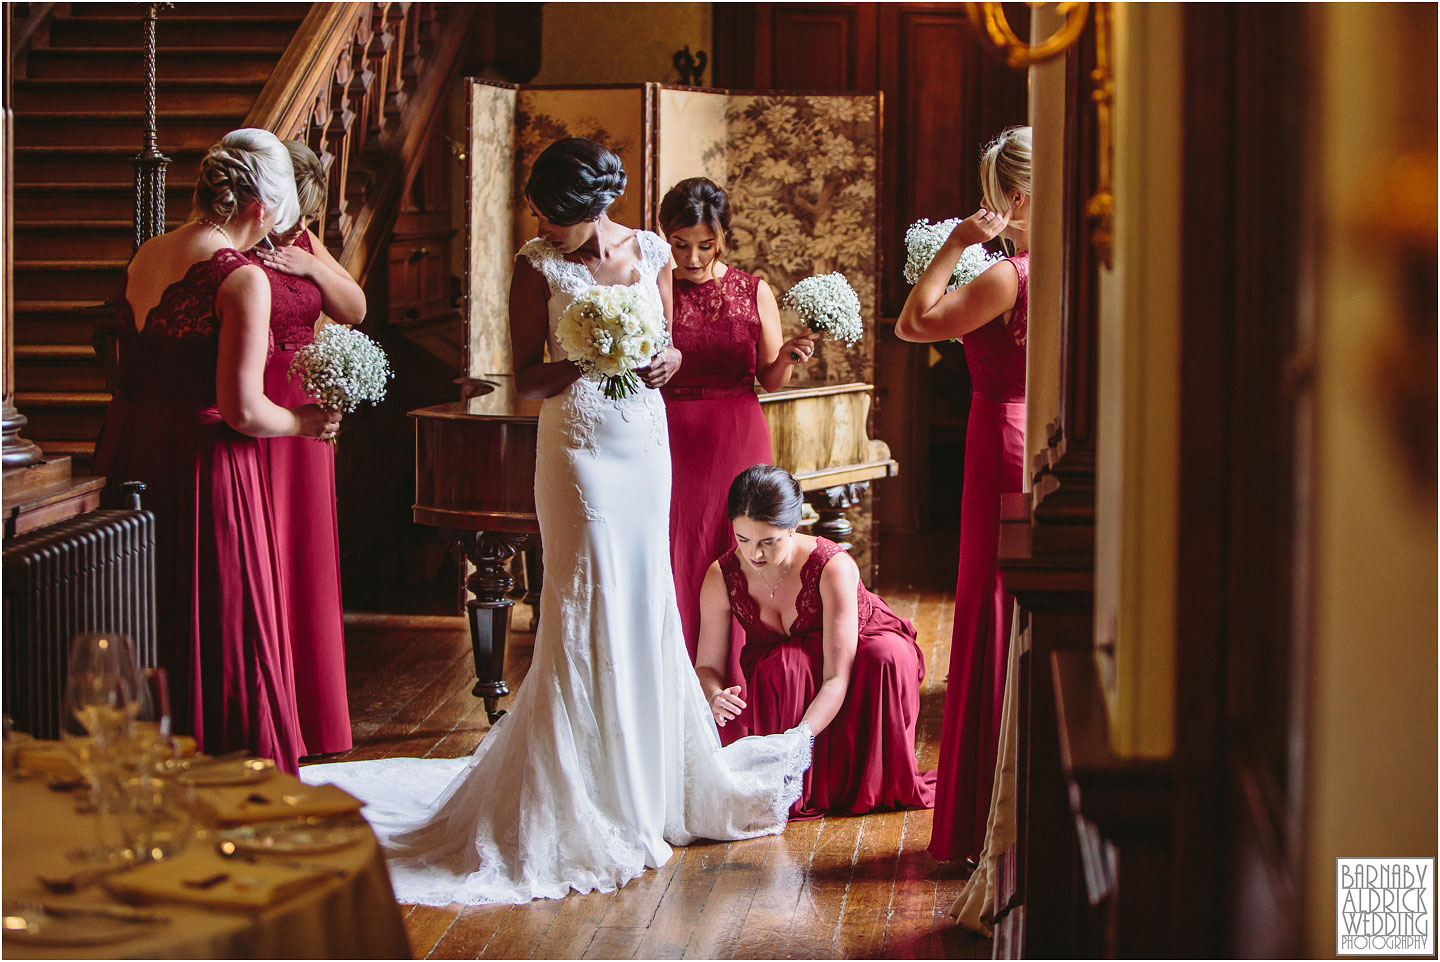 A bride prepares for entering the wedding at Sandon Hall, Sandon Hall Wedding photographs in Staffordshire, Sandon Hall Stafford wedding photos, Midlands exclusive country house wedding venue